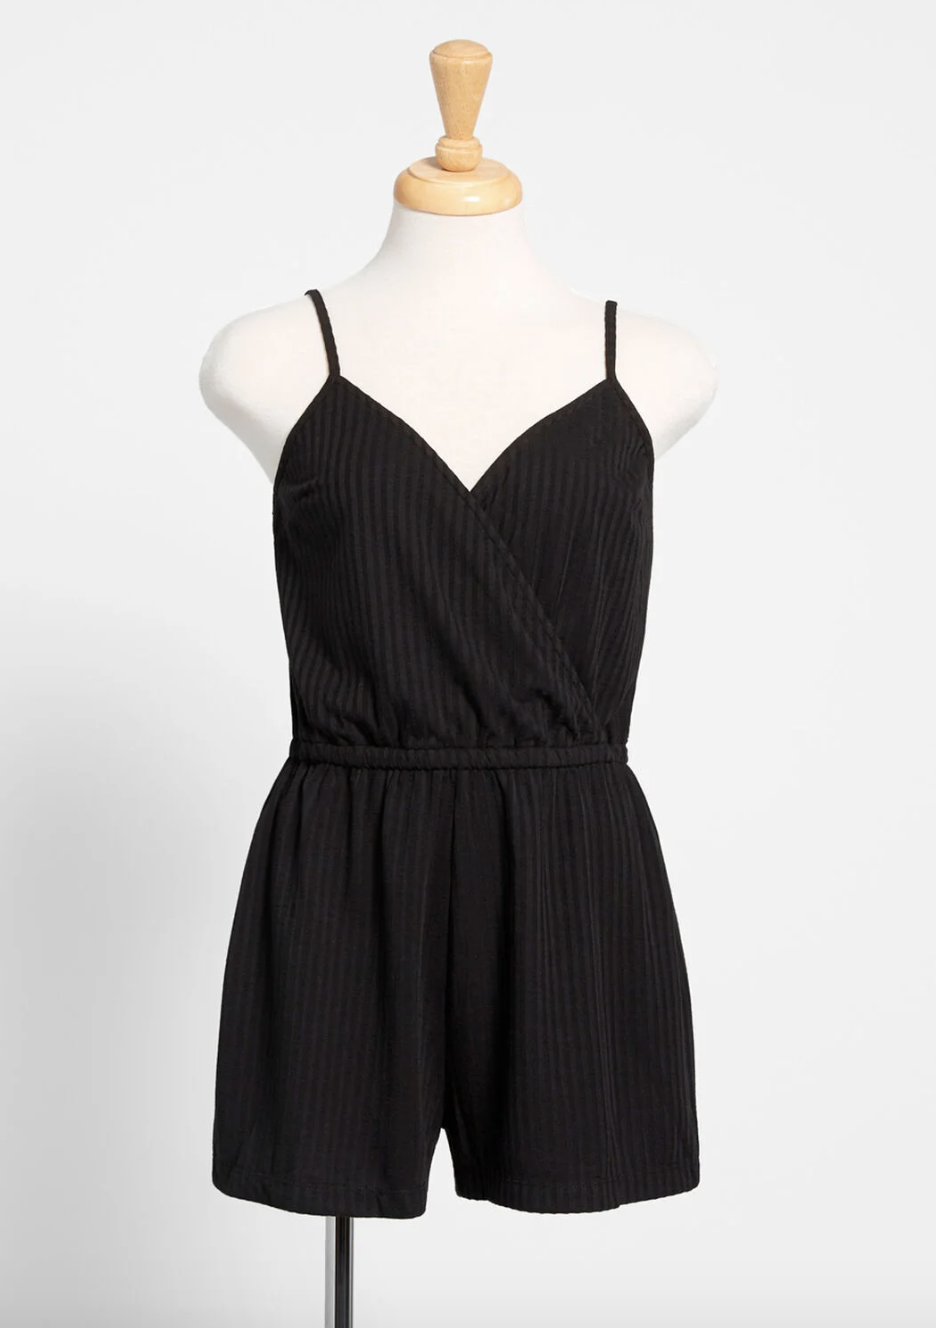 A black romper with shorts on top, straps, and V-neckline